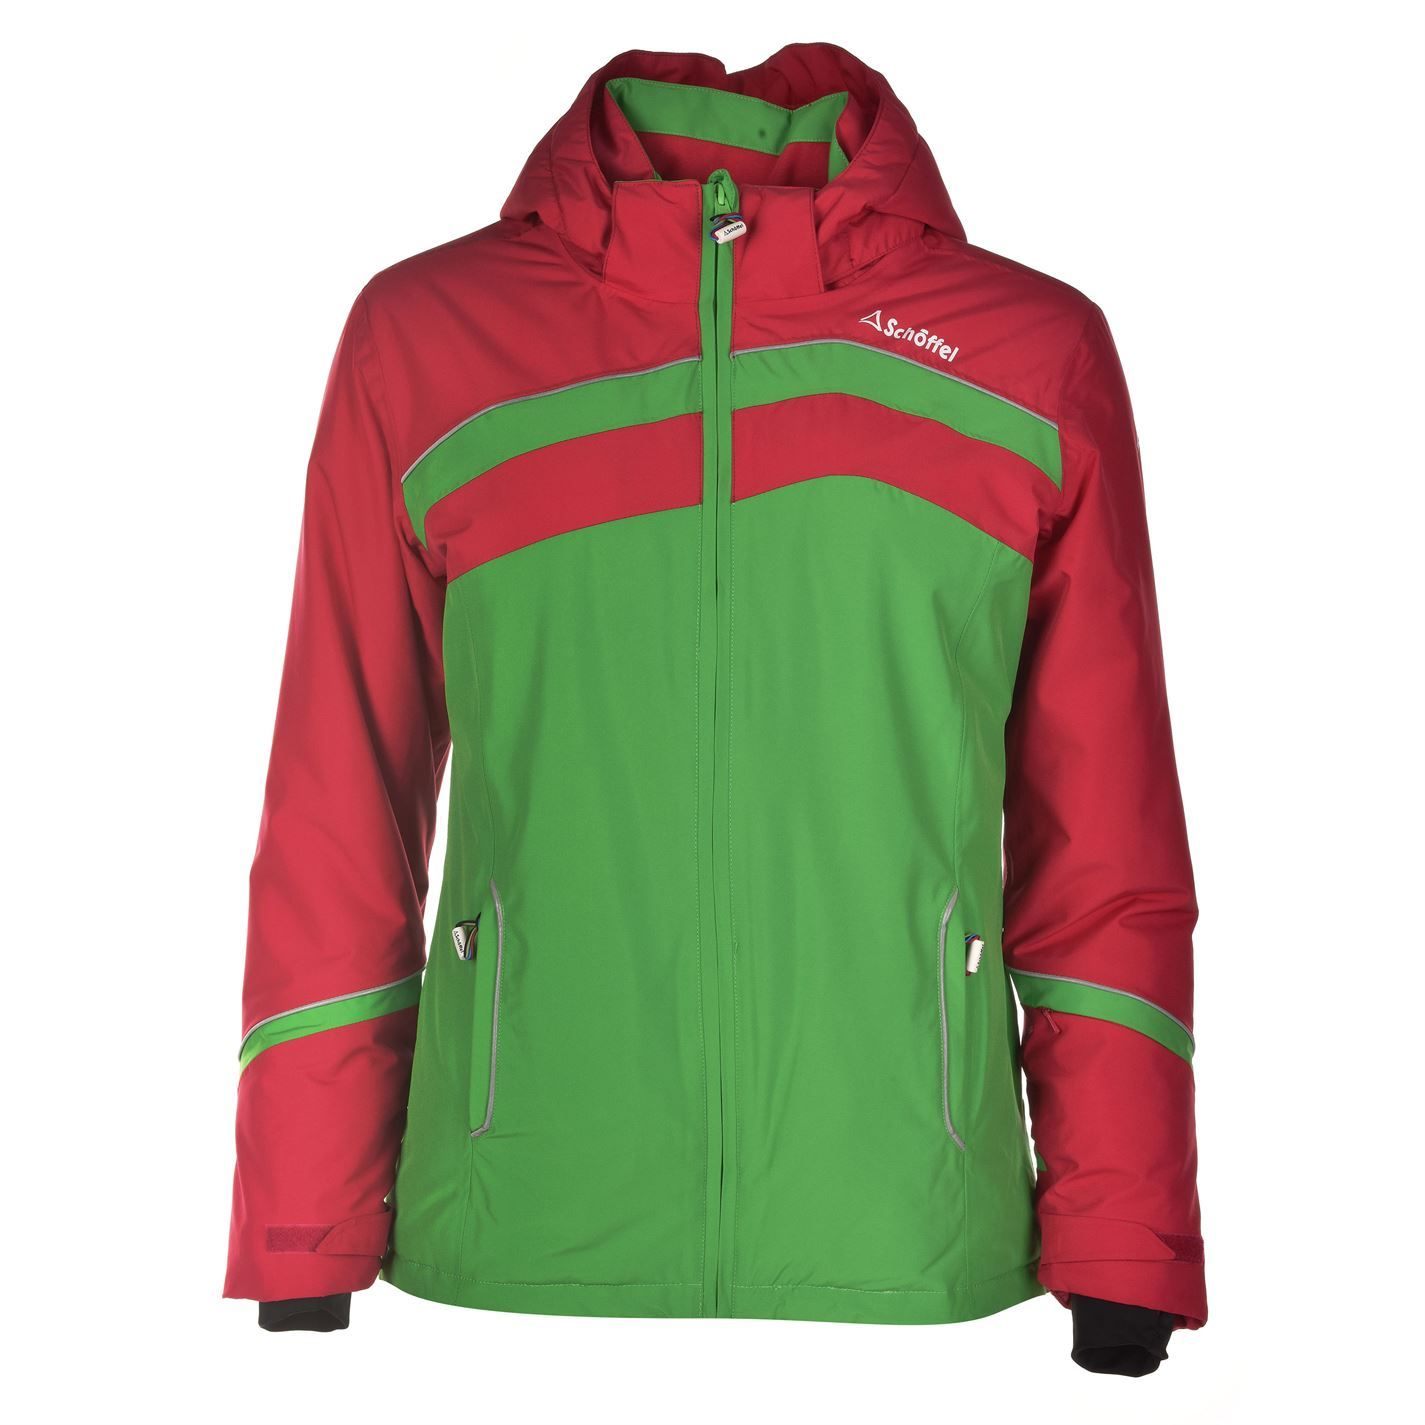 Spyder Vail Boys Ski Jacket Company: Spyder. Price: $$$ Sizes: All. Rating: /5. The last jacket had some waterproofing and breathabiltiy issues but that's not the case with the Spyder Vail Boys Ski Jacket. It has one of the highest ratings for both as well as a high warmth rating.